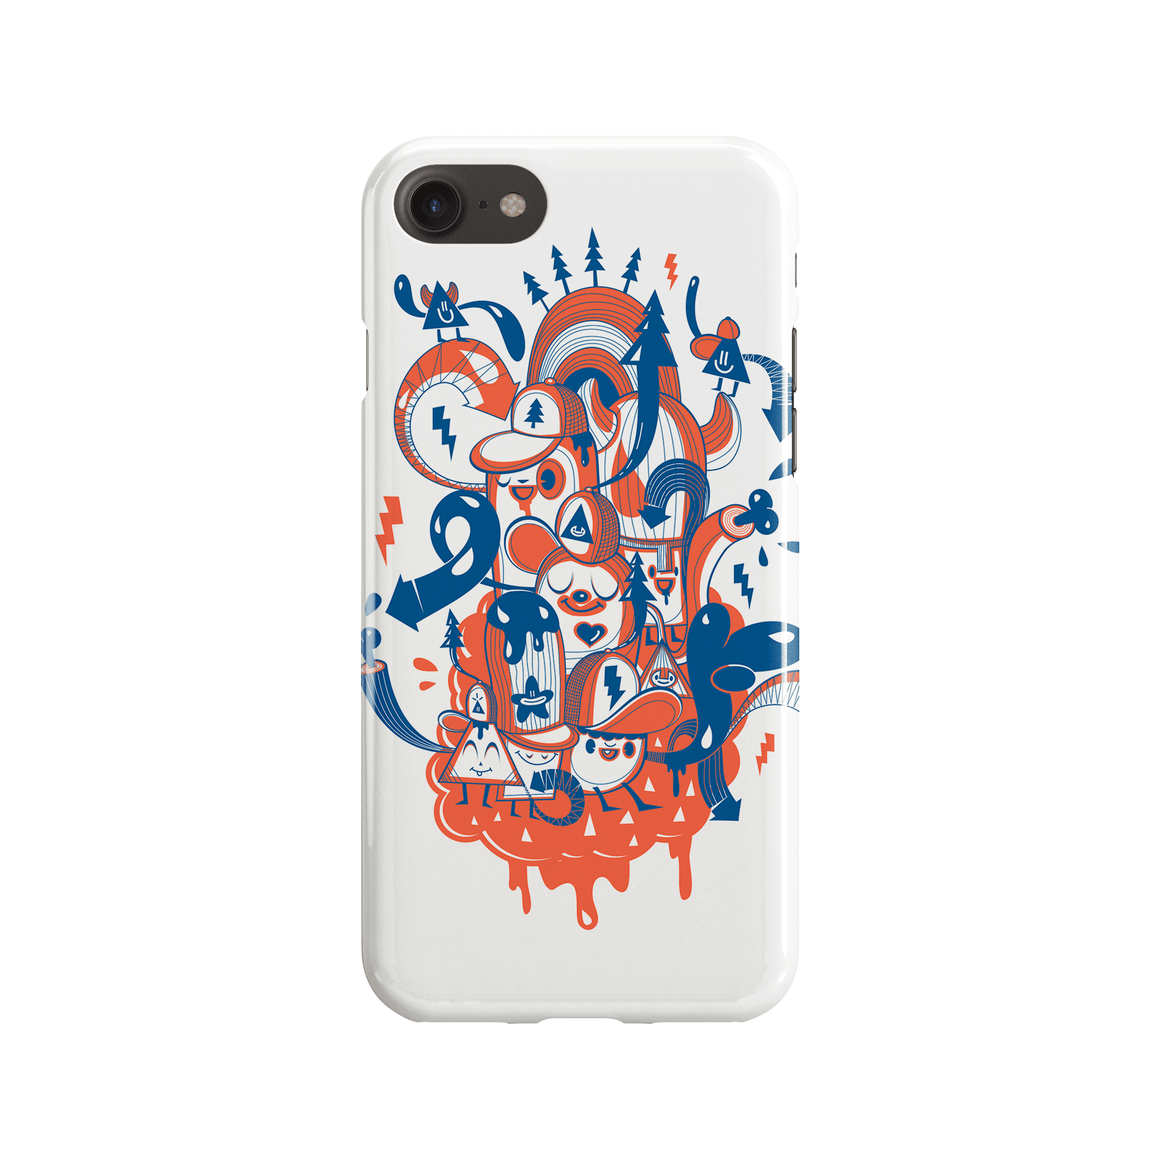 Chomb Amigos Phone Case